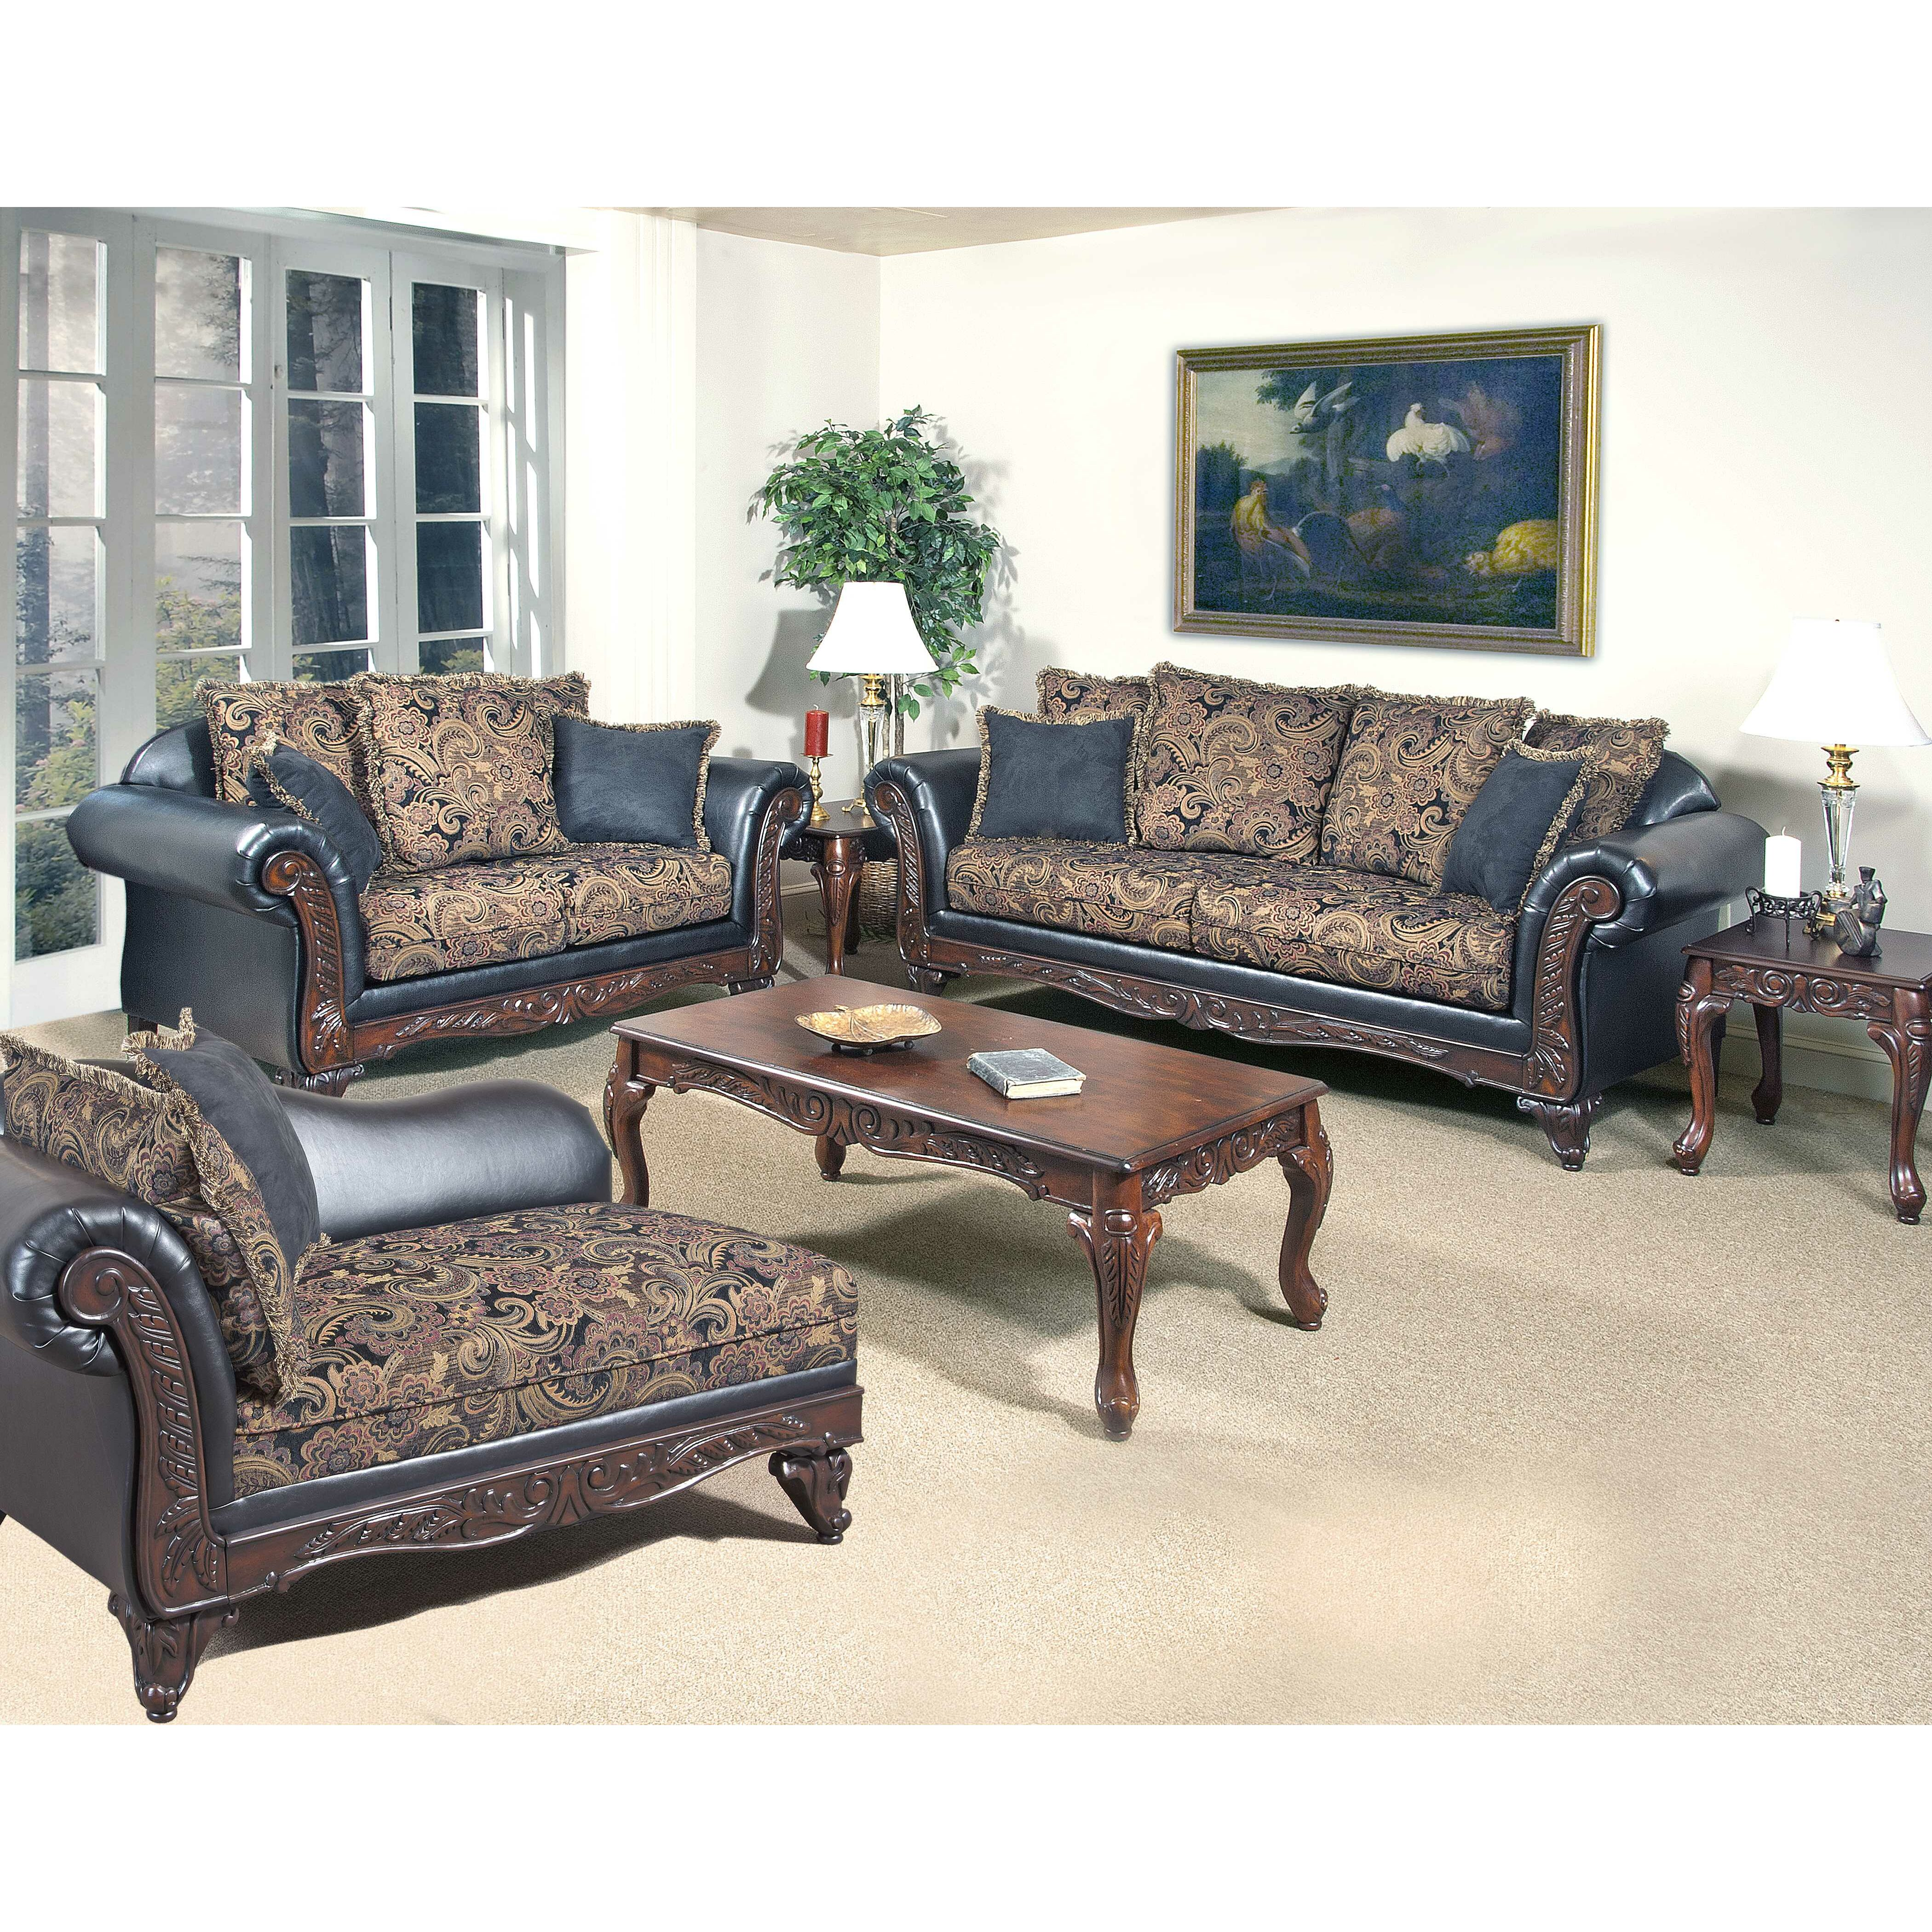 Serta Upholstery Floral Chaise Lounge Amp Reviews Wayfair